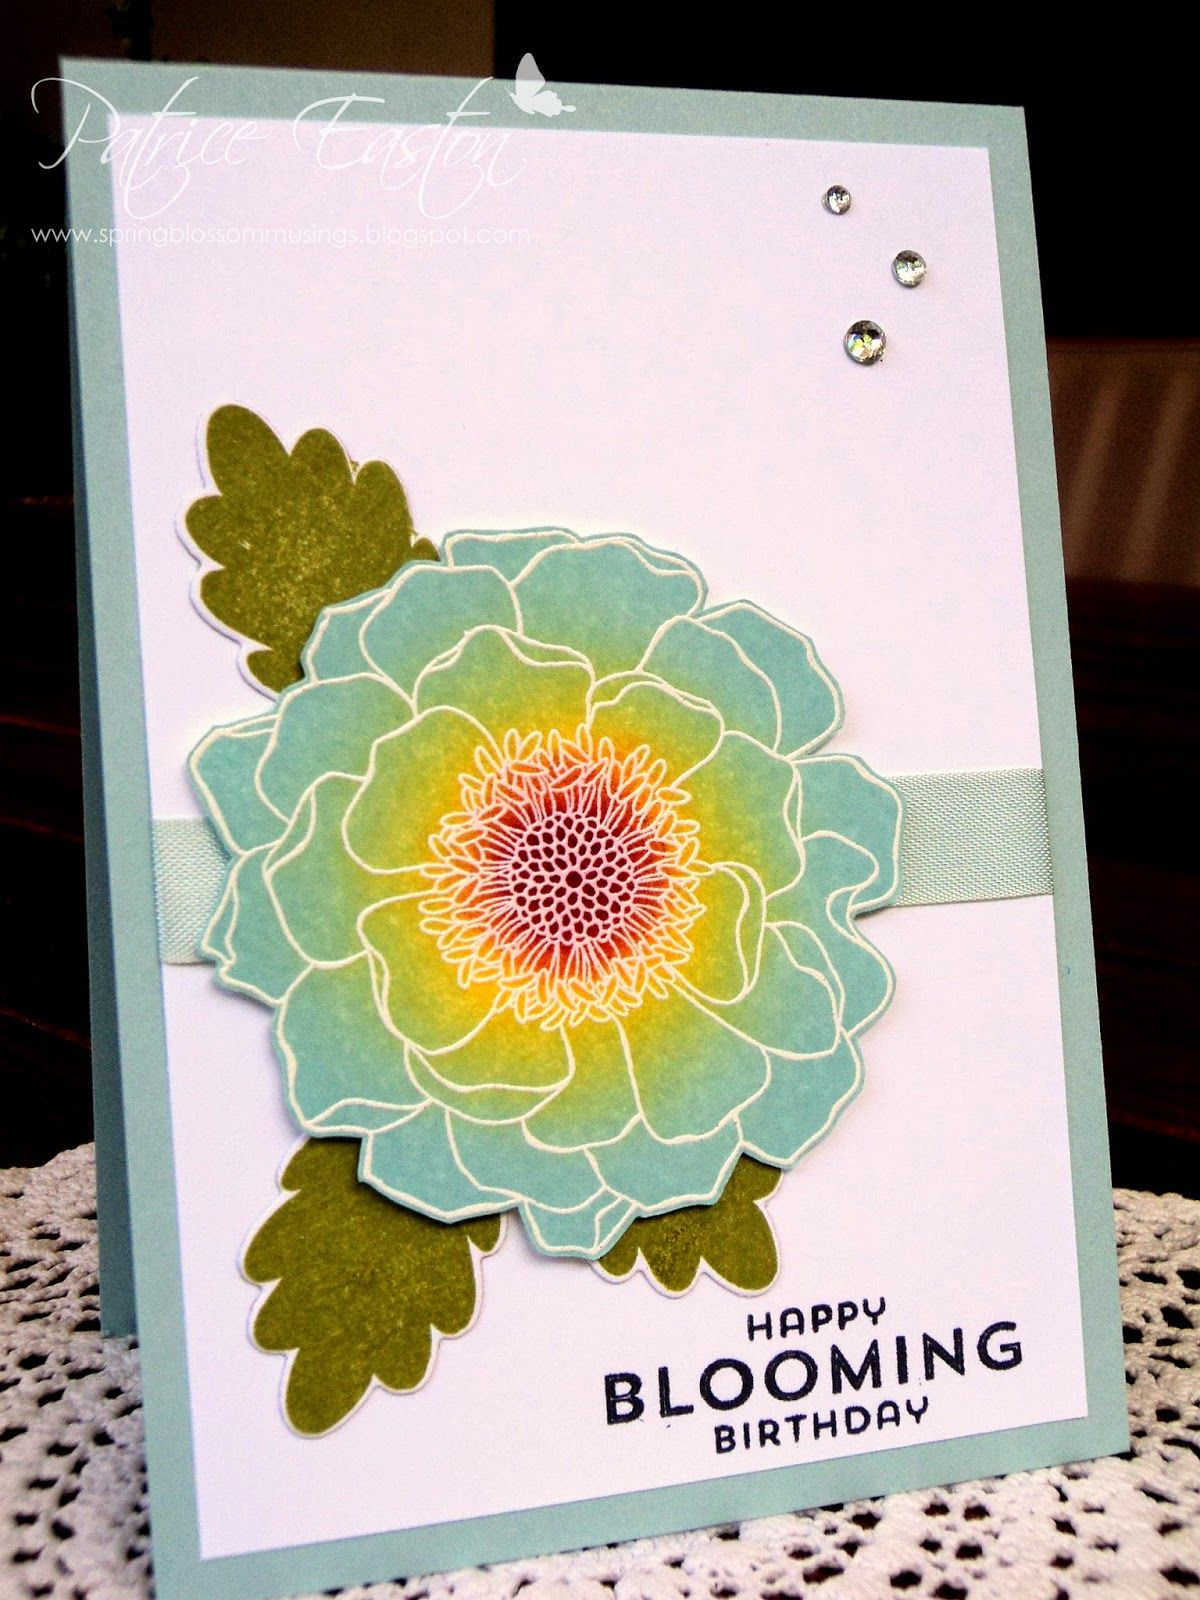 SU Blended Bloom | SU Flower Patch | Birthday | Sponged Soft Sky | Spring Blossom Musings #stampinup #blendedbloom #softsky #birthday #sponging #springblossommusings